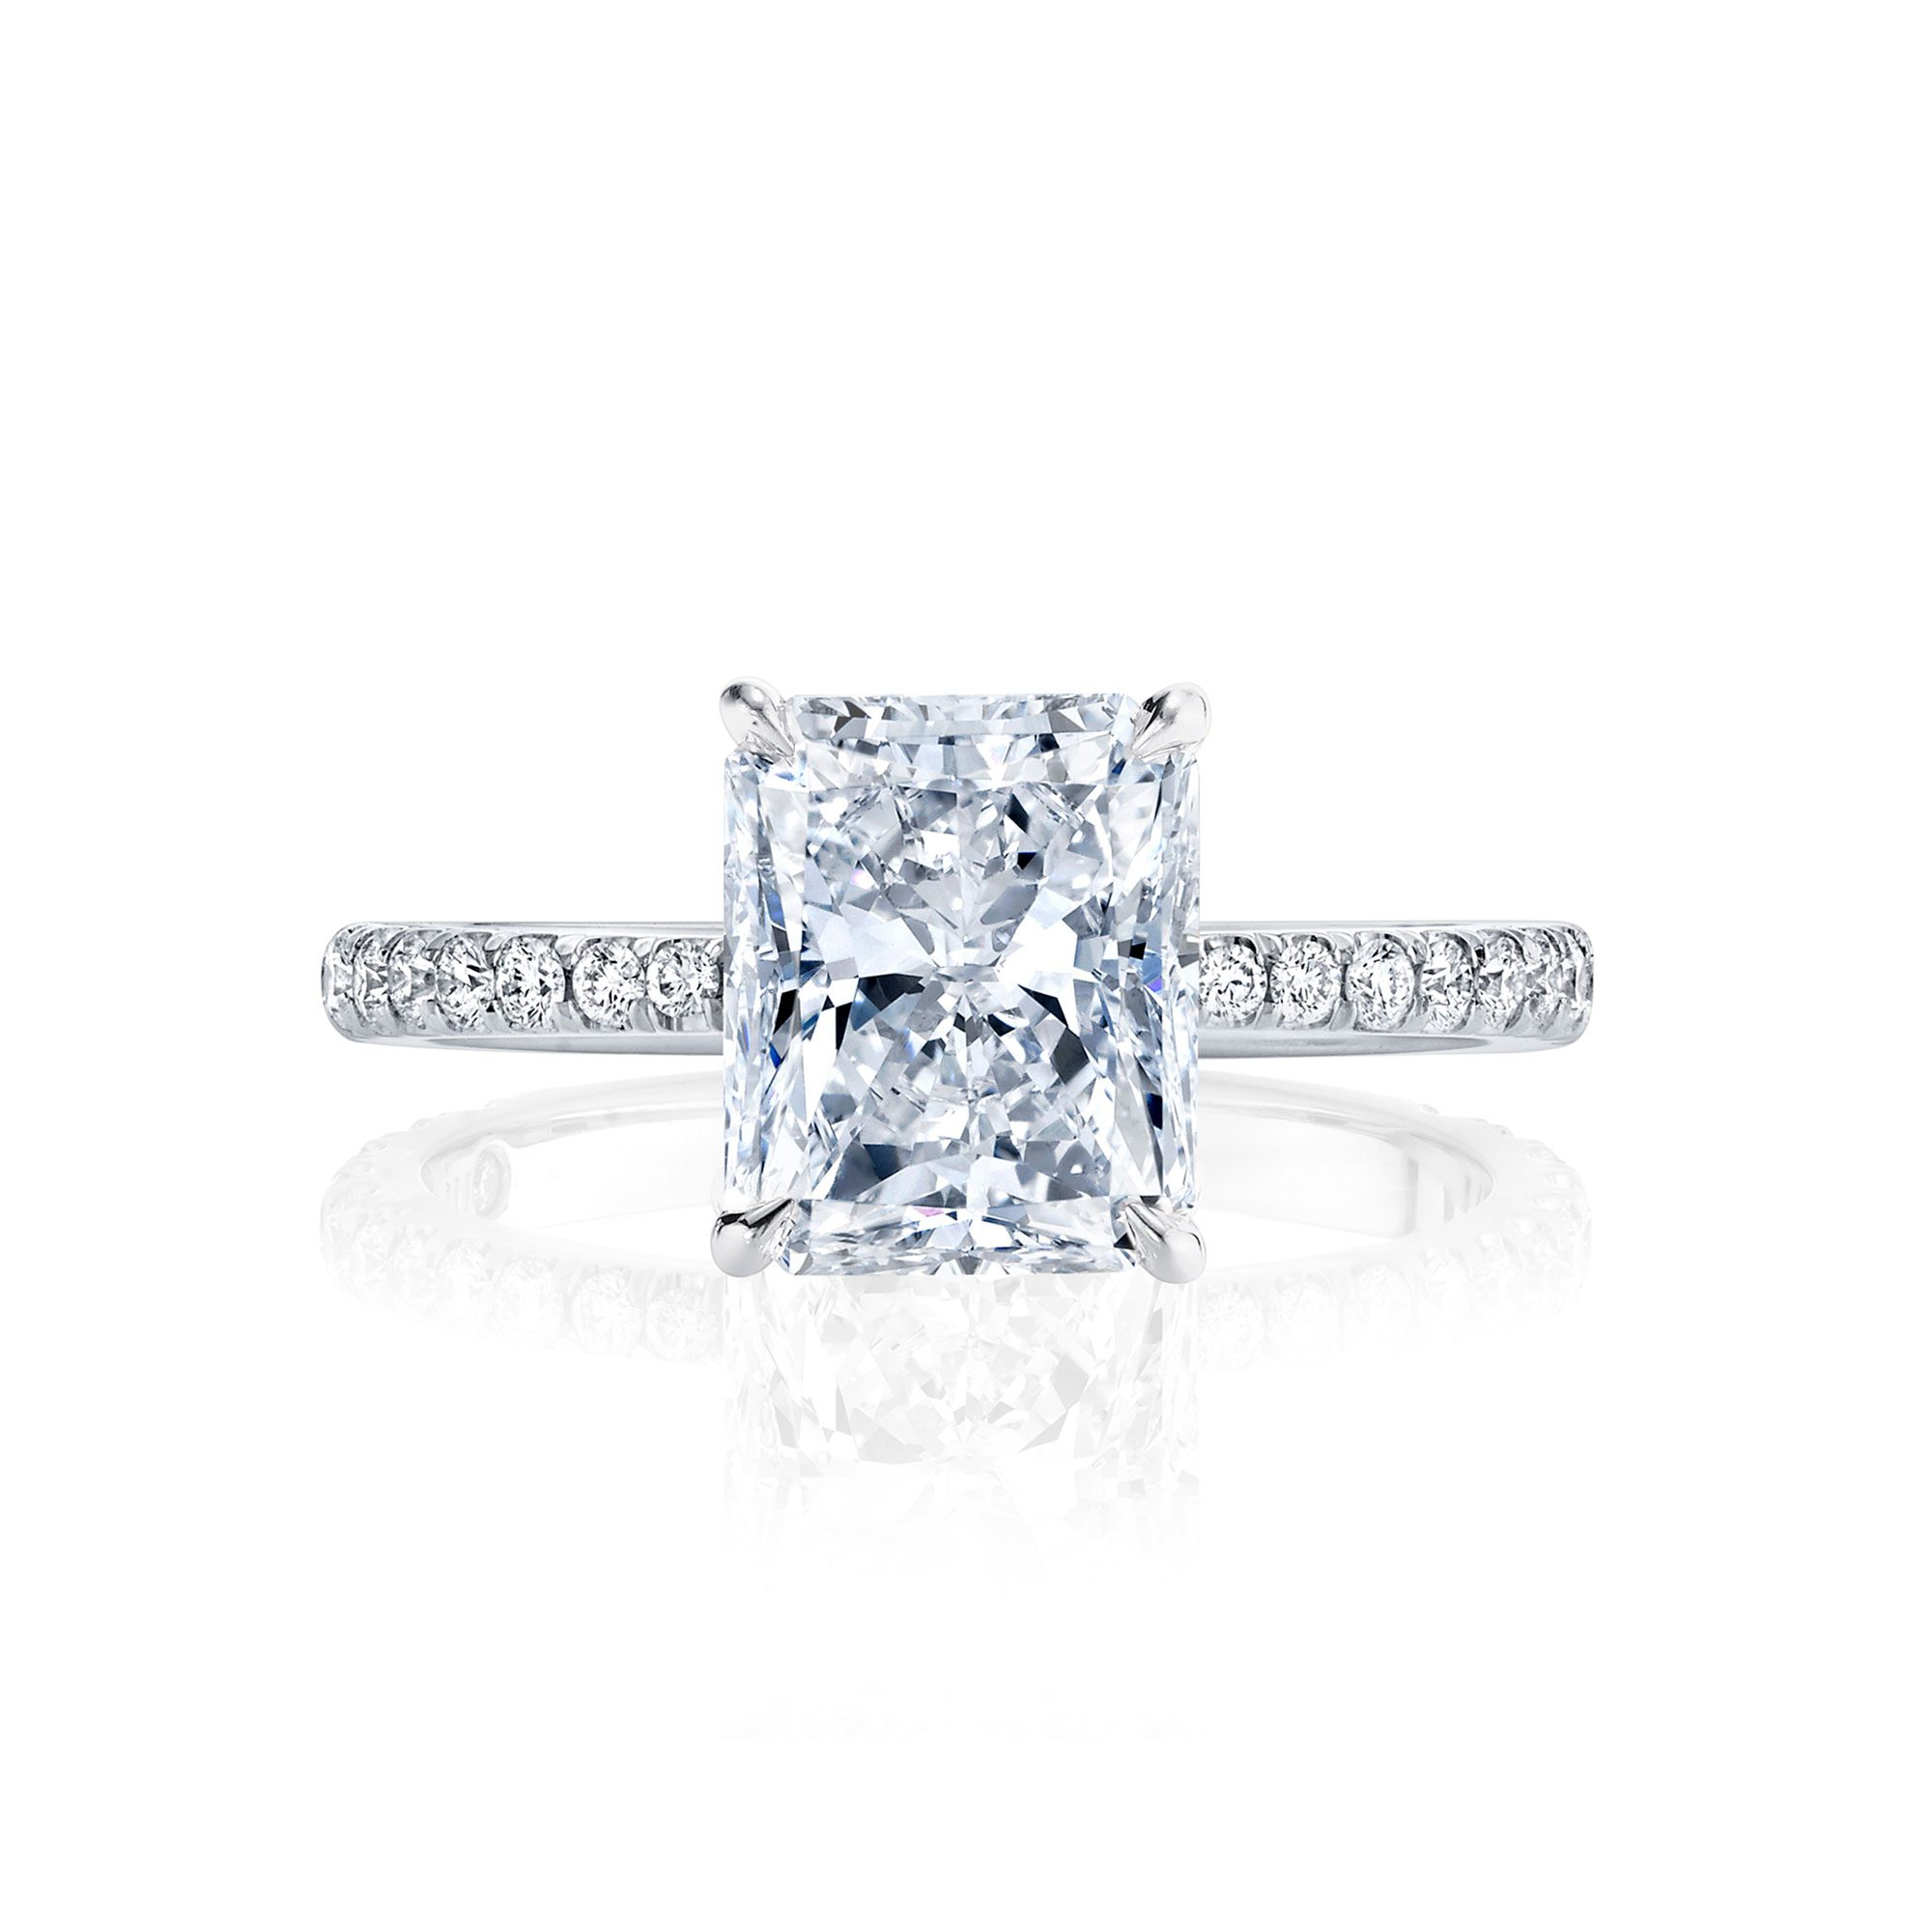 Eloise Solitaire Radiant Cut Lab Diamond Engagement Ring with Pavé Band in 18k White Gold